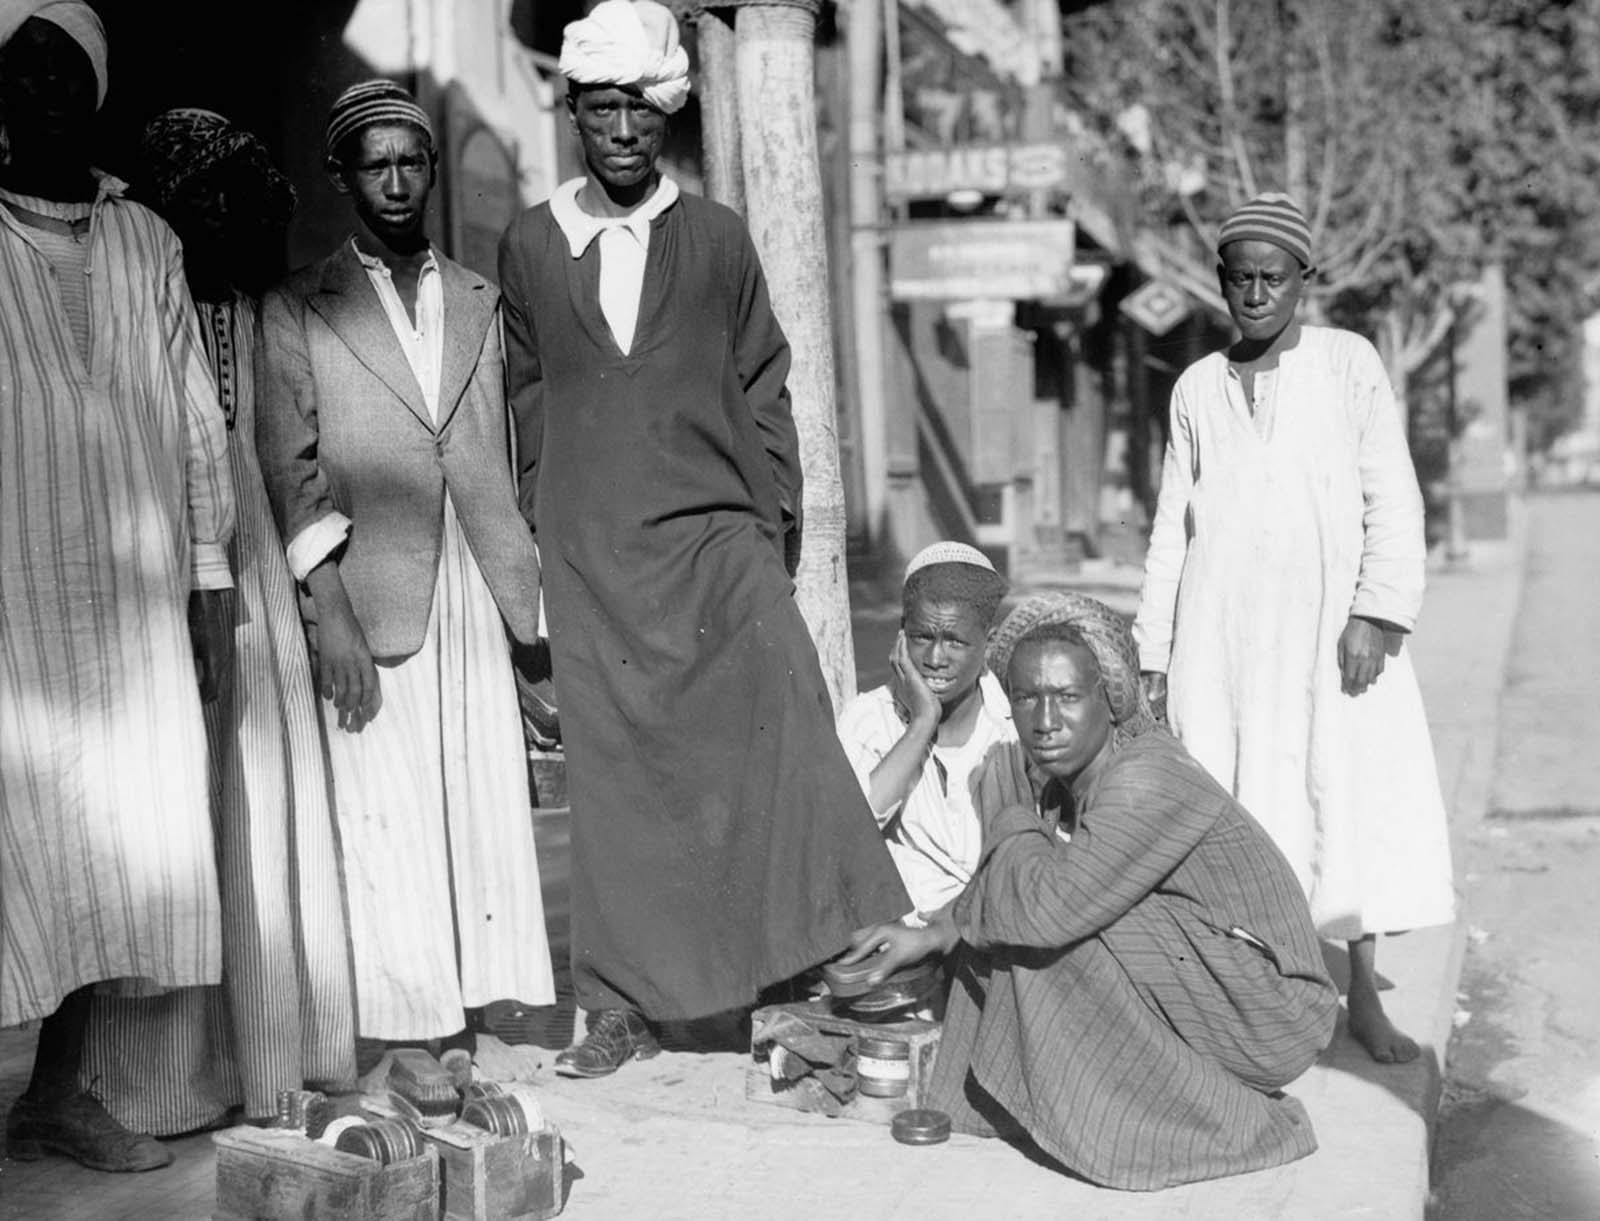 A shoeshine stand in Old Cairo. 1934.